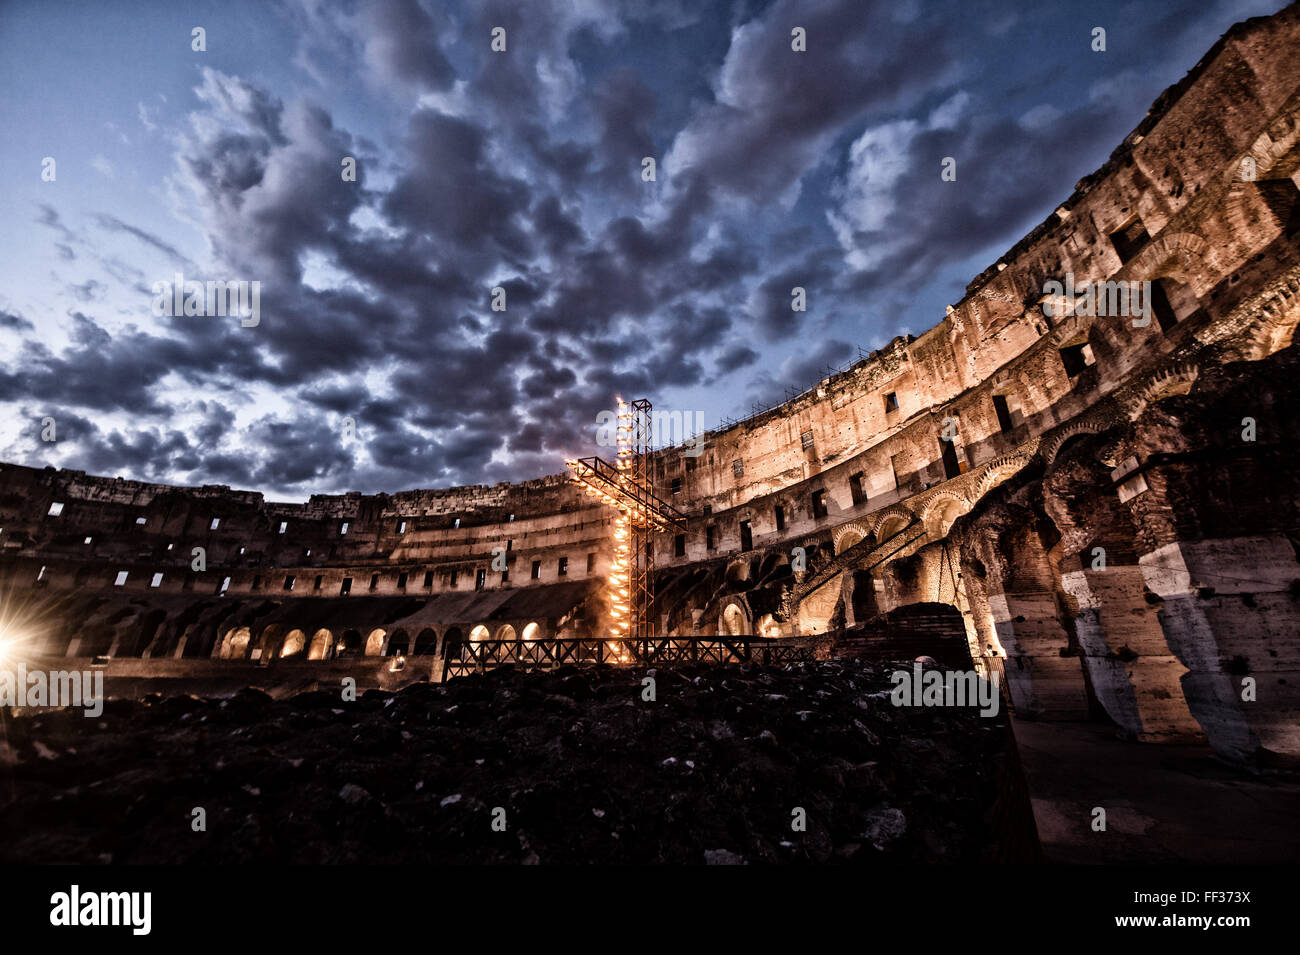 Colosseum with a lighten cross Colosseo croce accesa Picture post processed with a filter  Venerdi Santo Via Crucis - Stock Image